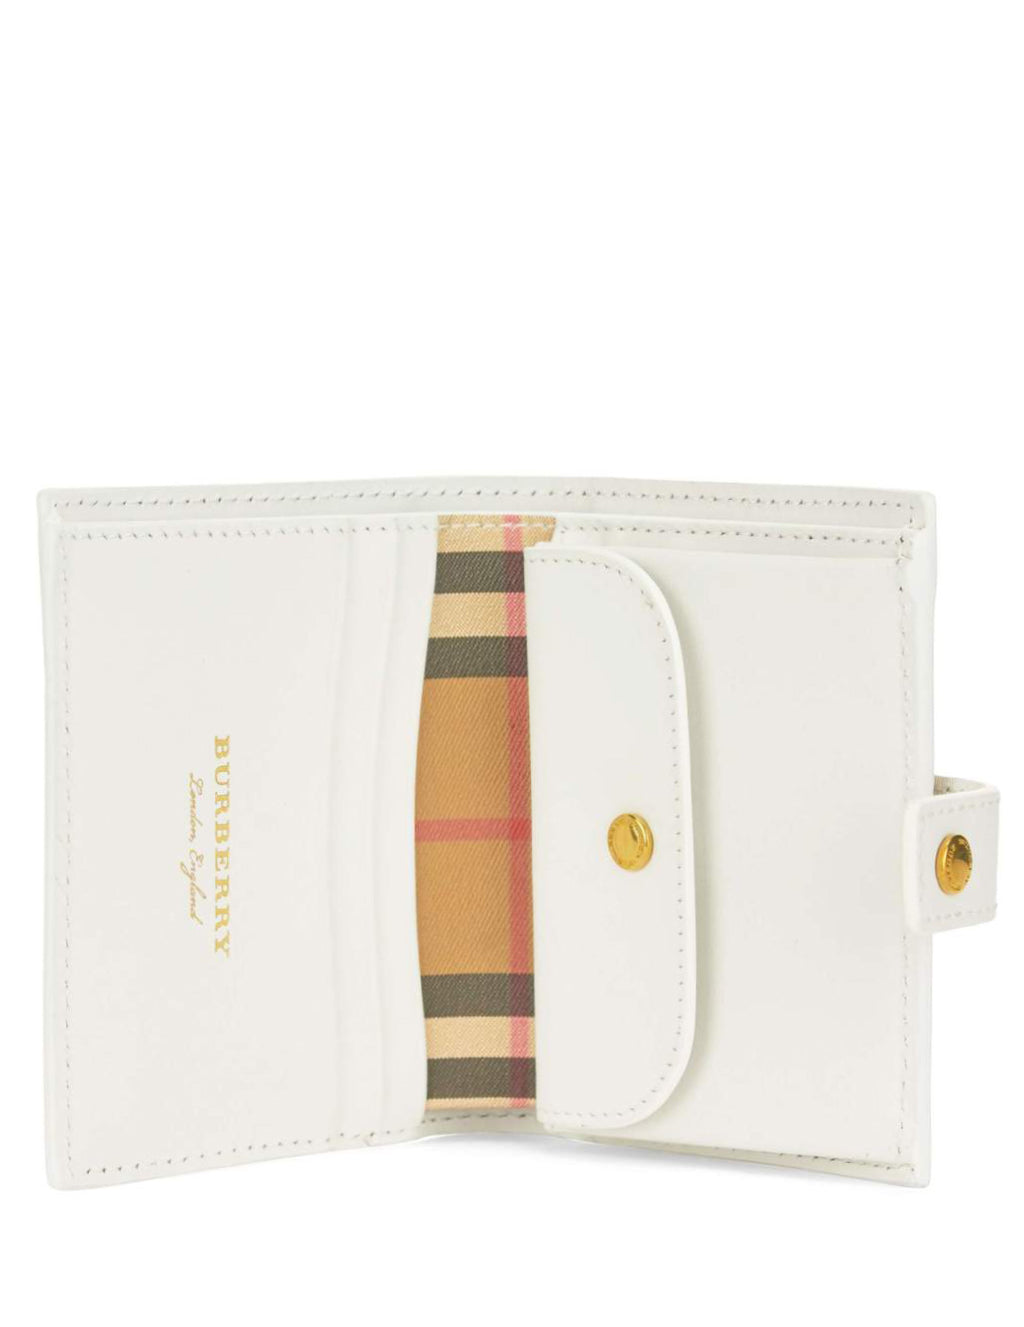 Burberry Women's Giulio Fashion Chalk White & Yellow Small Vintage Check and Leather Folding Purse 407343211400